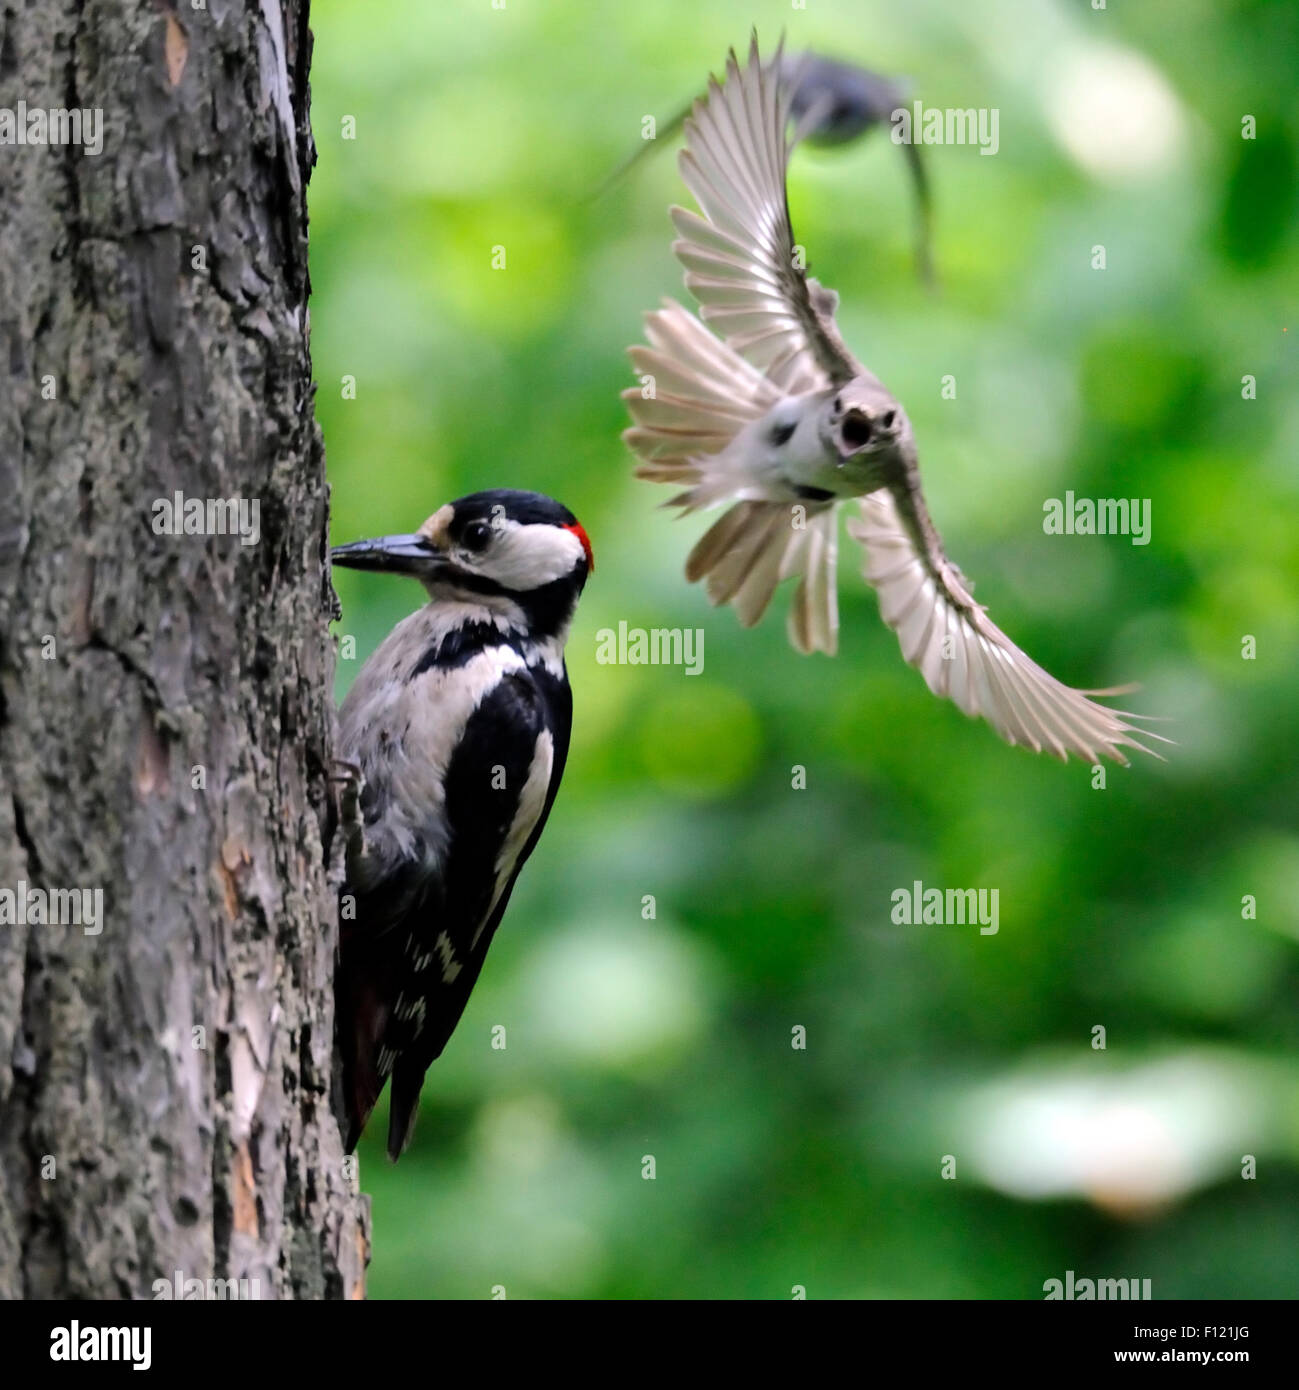 To protect its nest Pied Flycatcher attacks Great Spotted Woodpecker - Stock Image